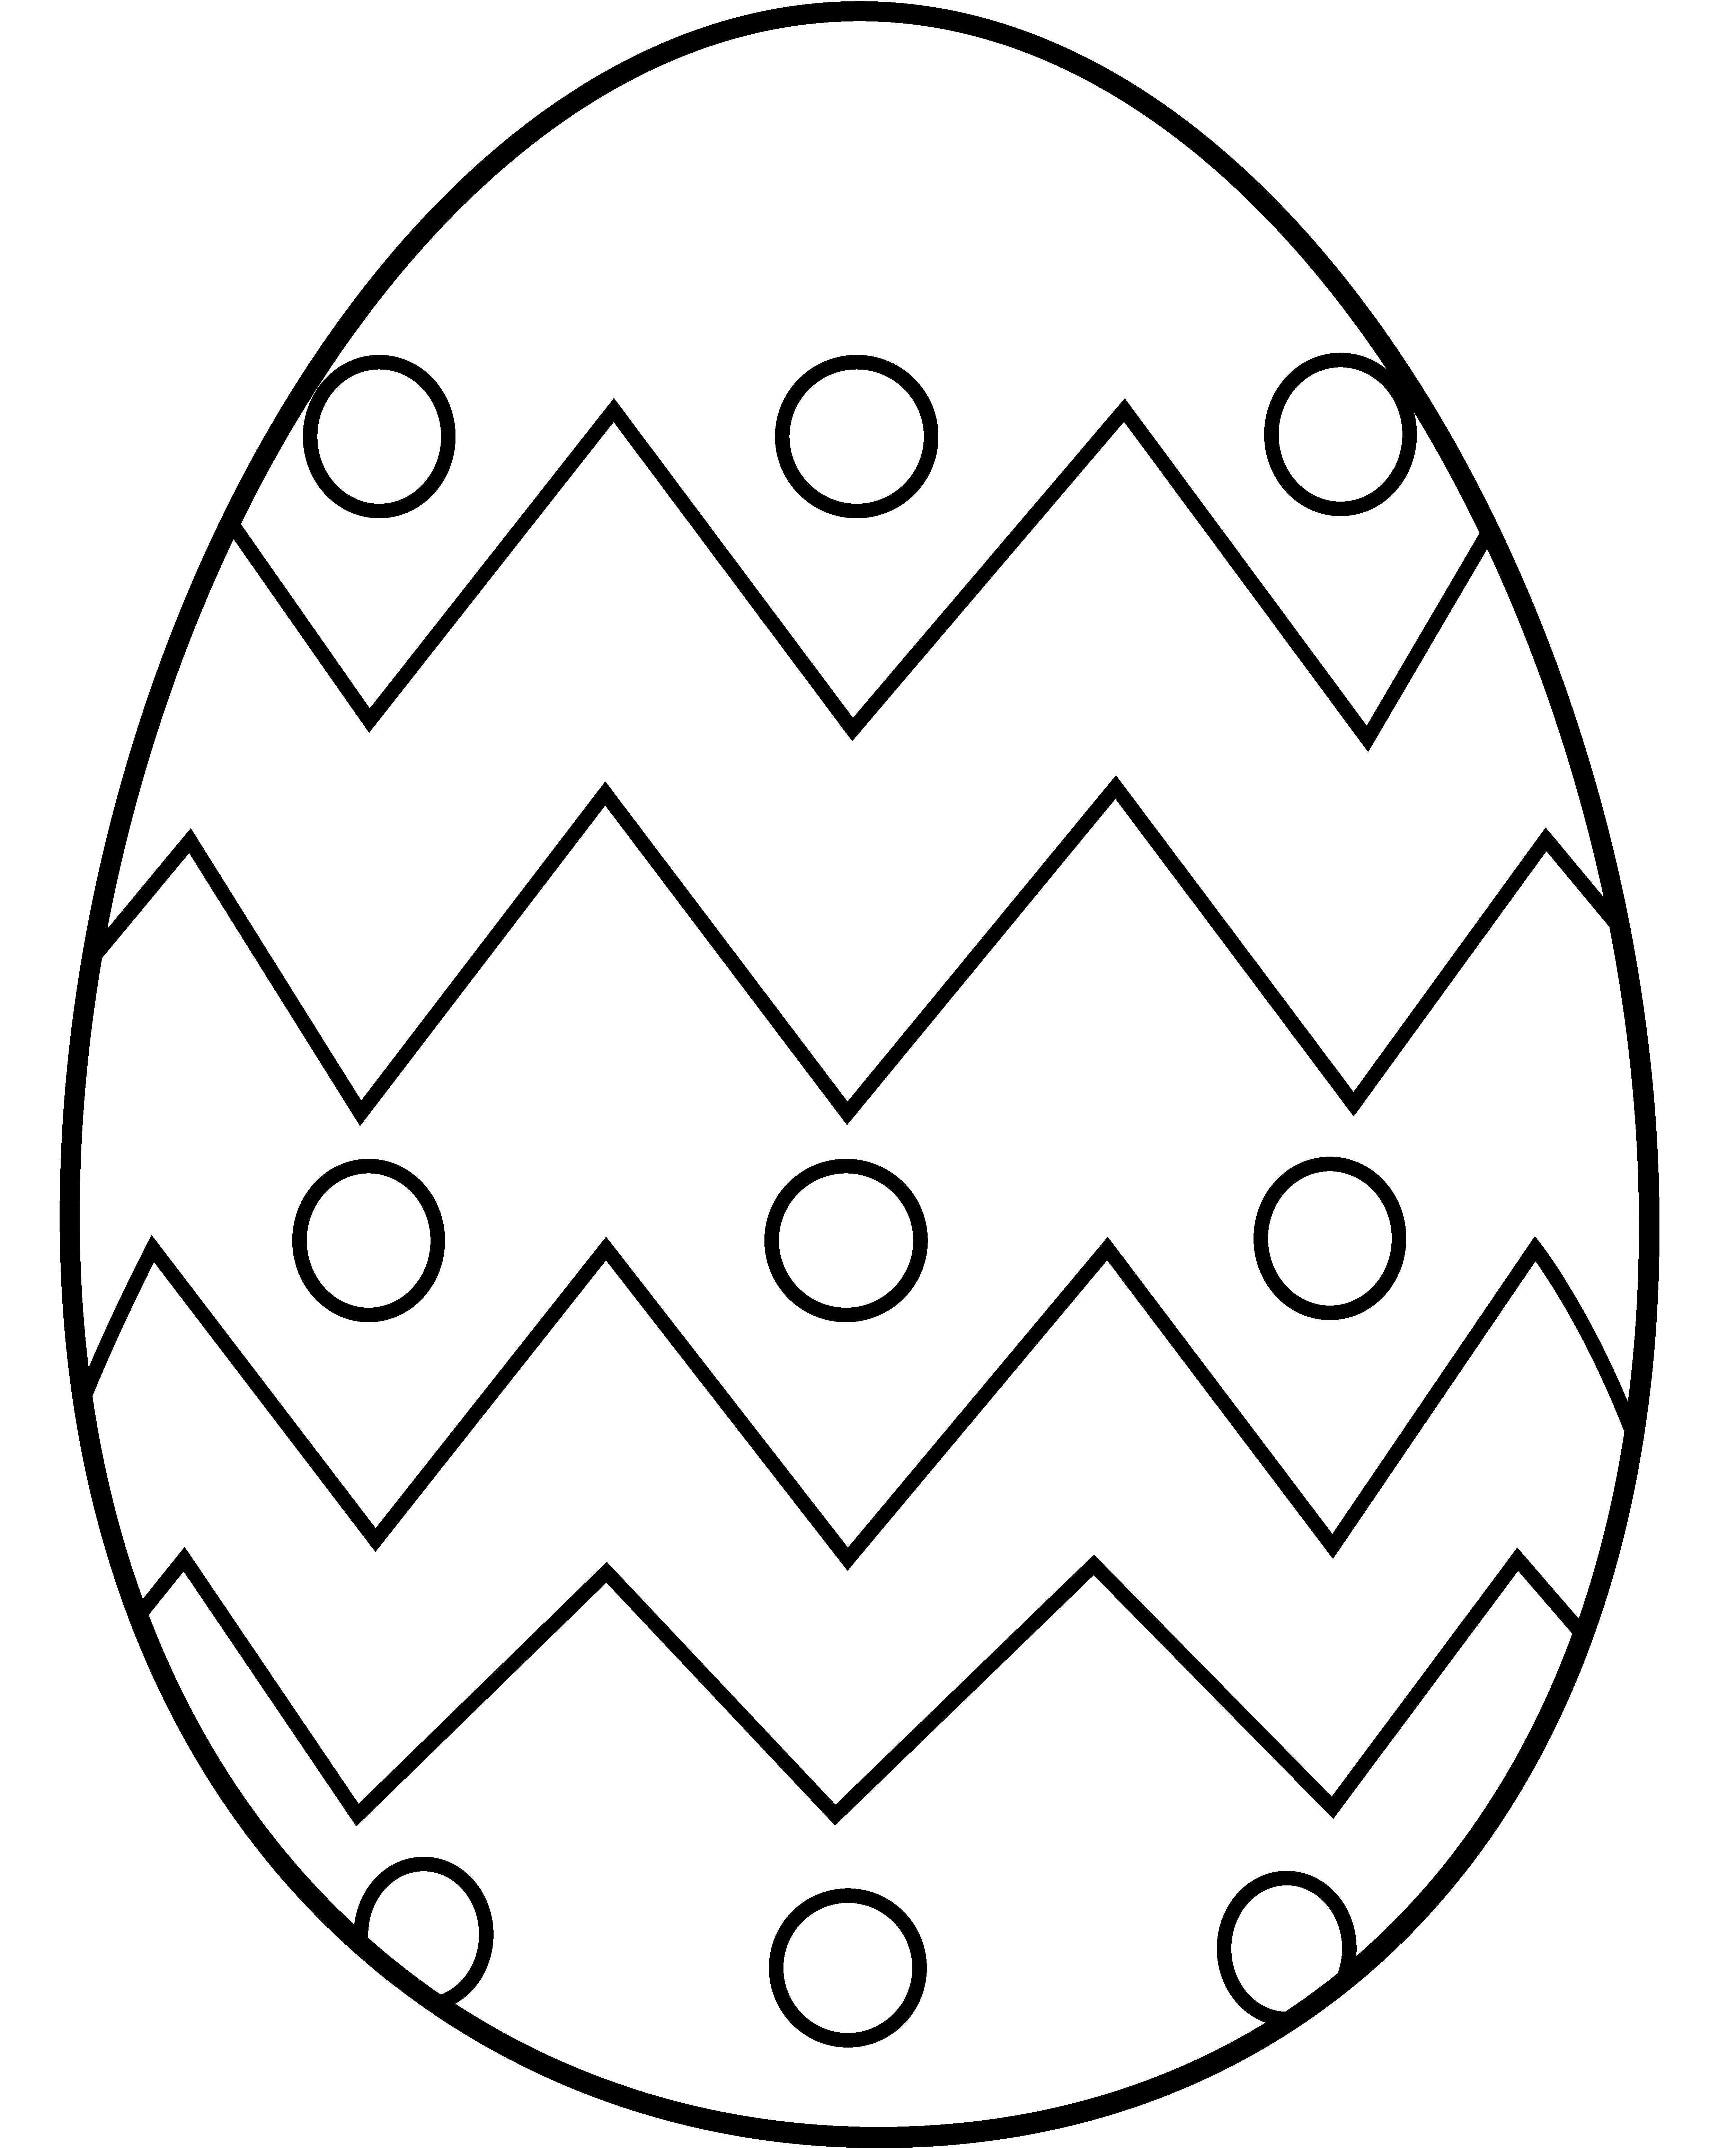 - Easter Egg Colour In Easter Coloring Pages, Easter Egg Coloring